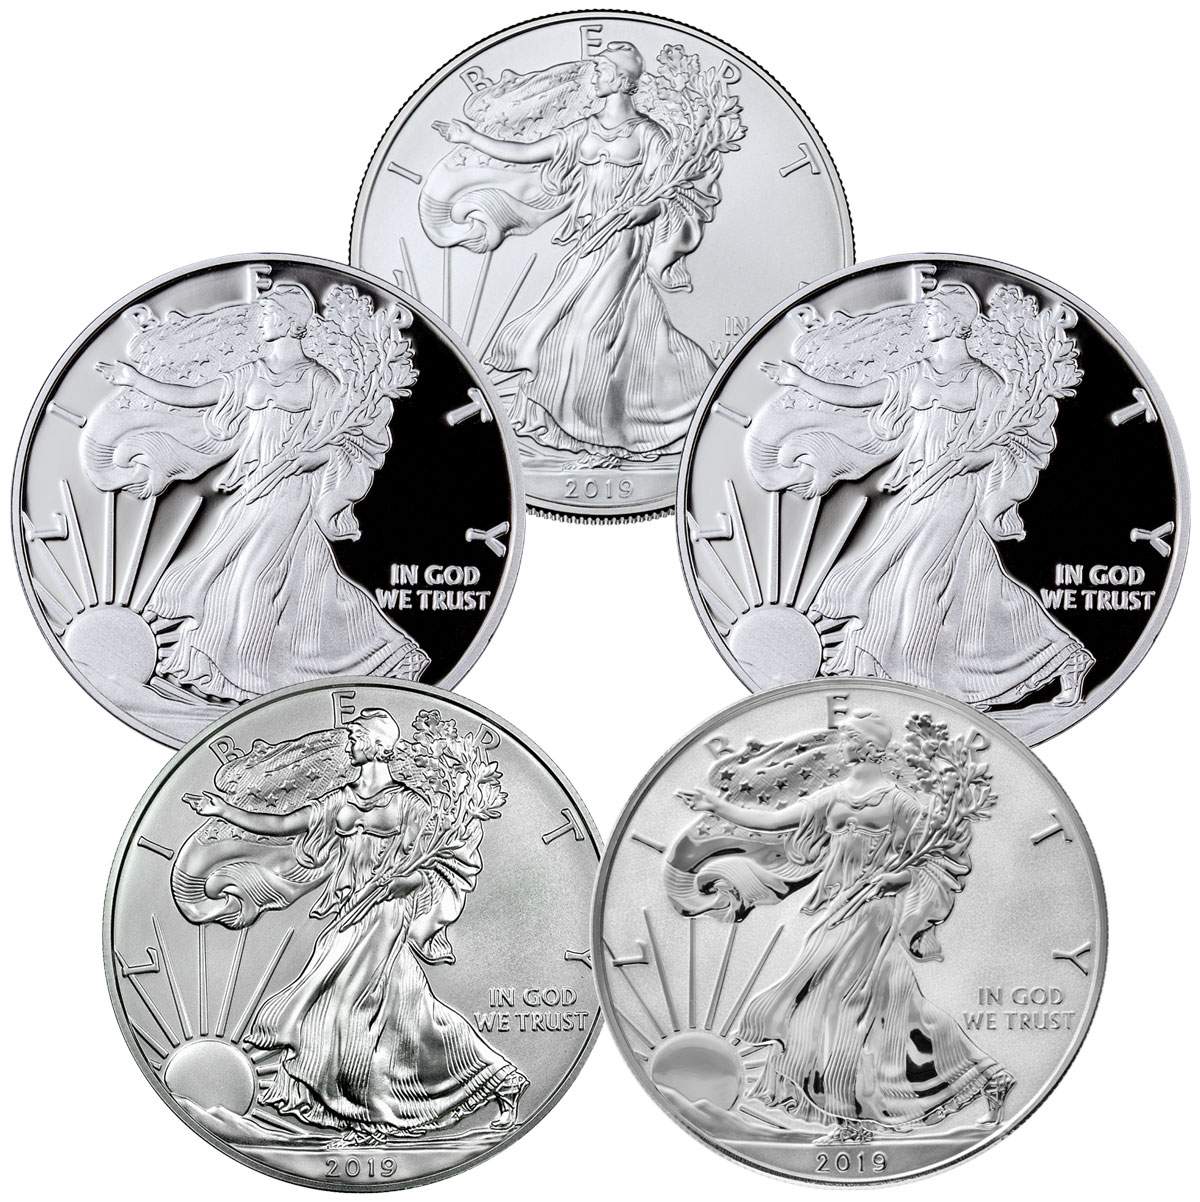 5-Piece Set - 2019 $1 1 oz. American Silver Eagle BU + Proof Coins in Display Box